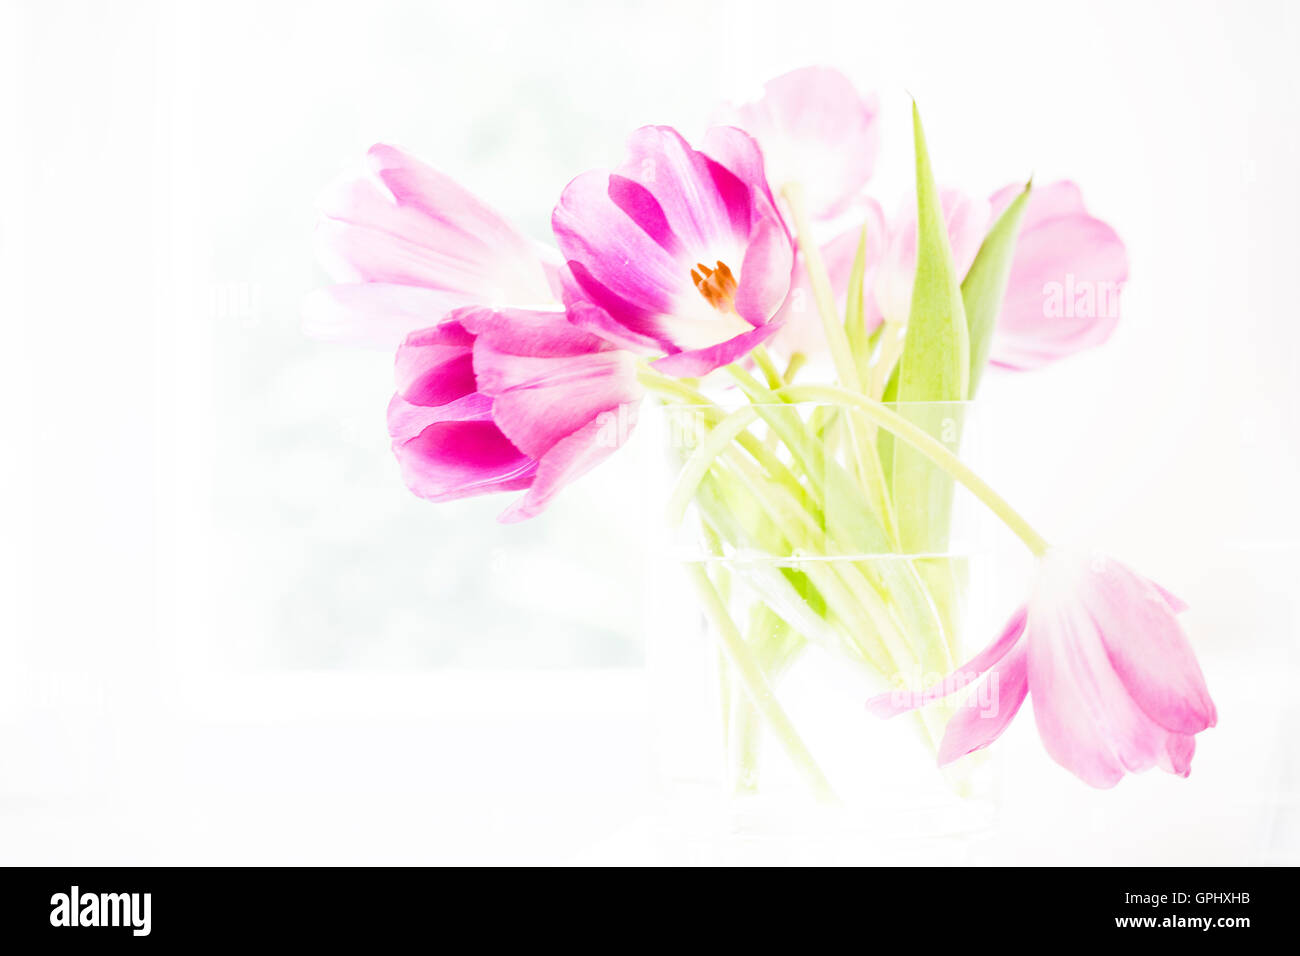 An arrangement of bright, pink tulips in a clear glass vase set against a white background. - Stock Image